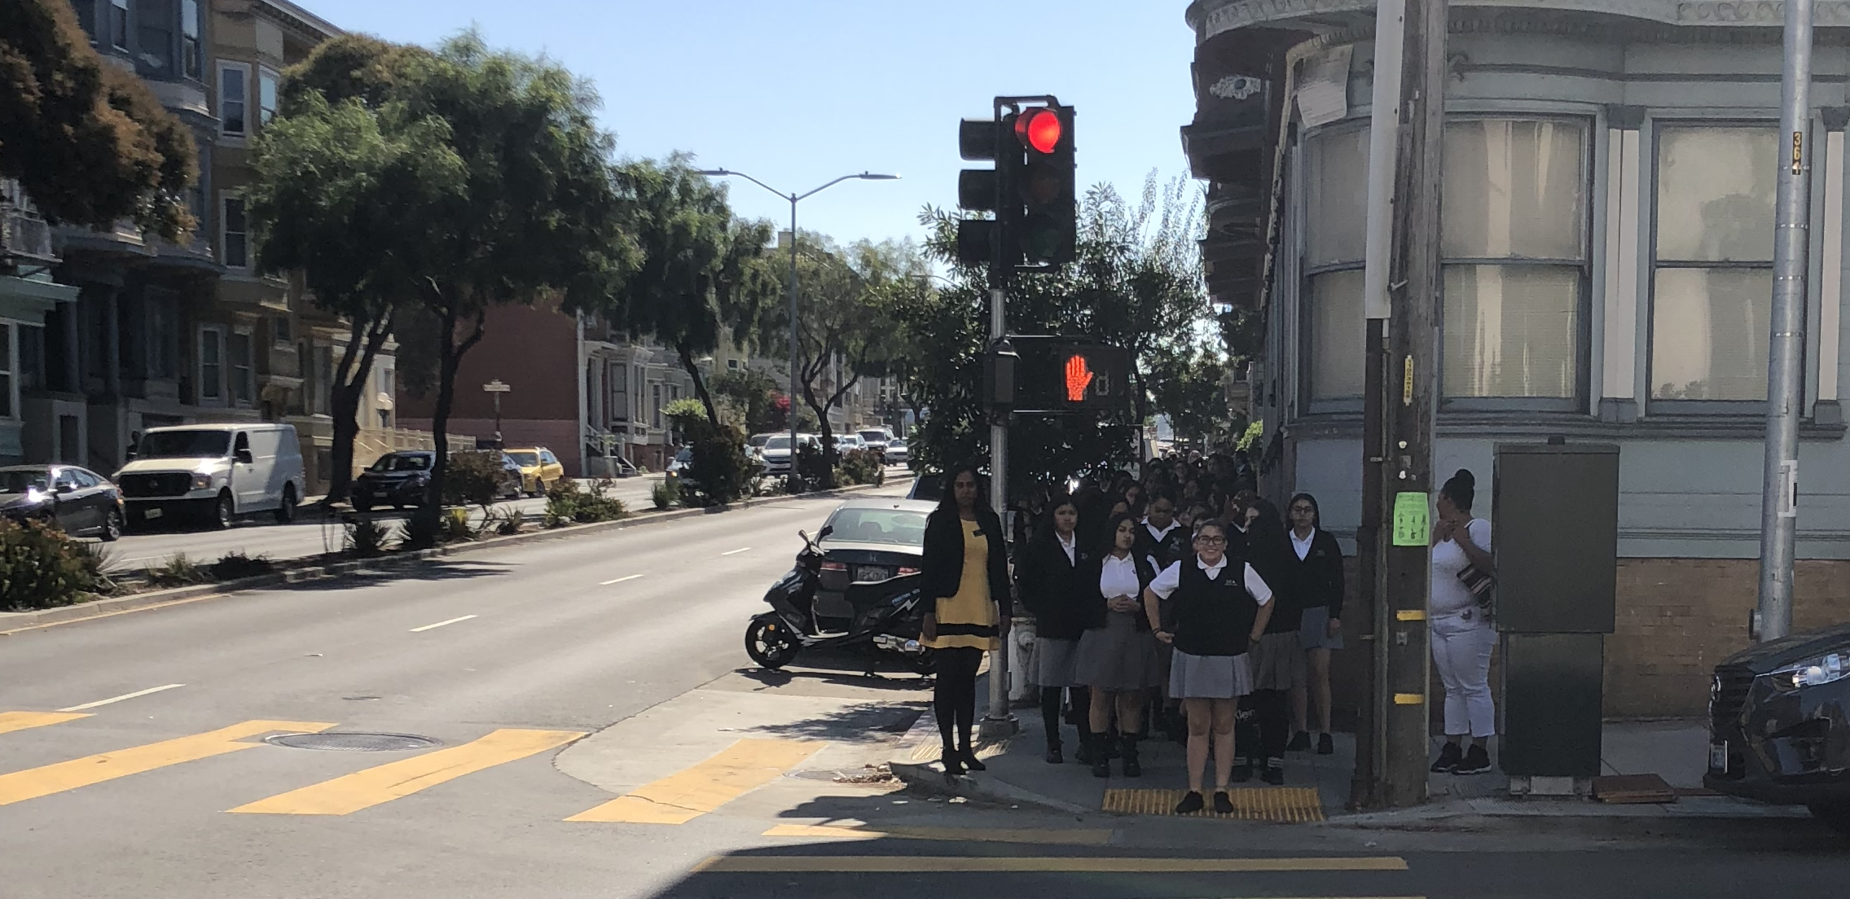 students getting ready to cross the street at intersection